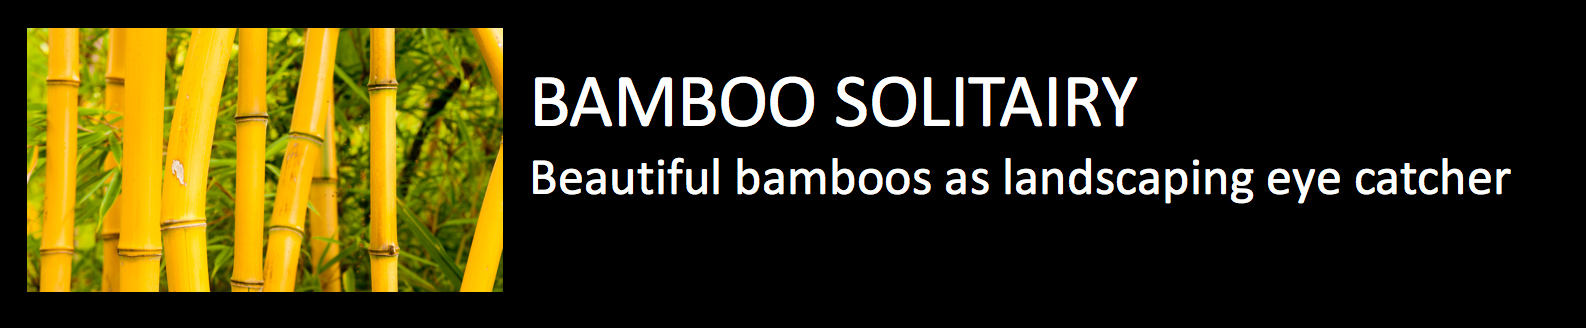 Bamboo solitairy beautiful bamboos as landcaping eye catcher